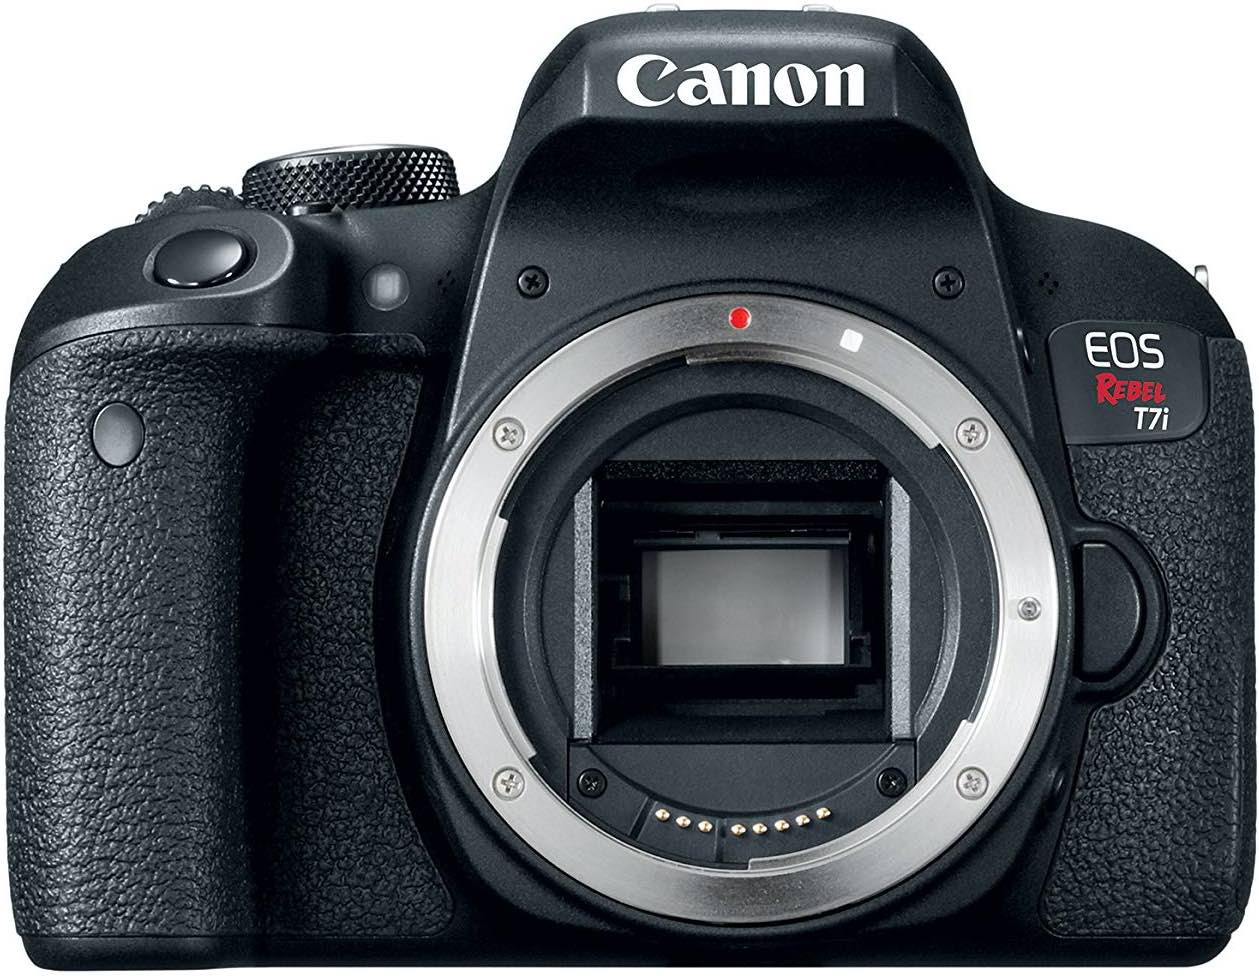 Canon t7i DSLR Camera for beginner Astrophotographers, affordable camera for amateur astrophotography. How to photograph the Milky Way and deep sky objects with a DSLR camera